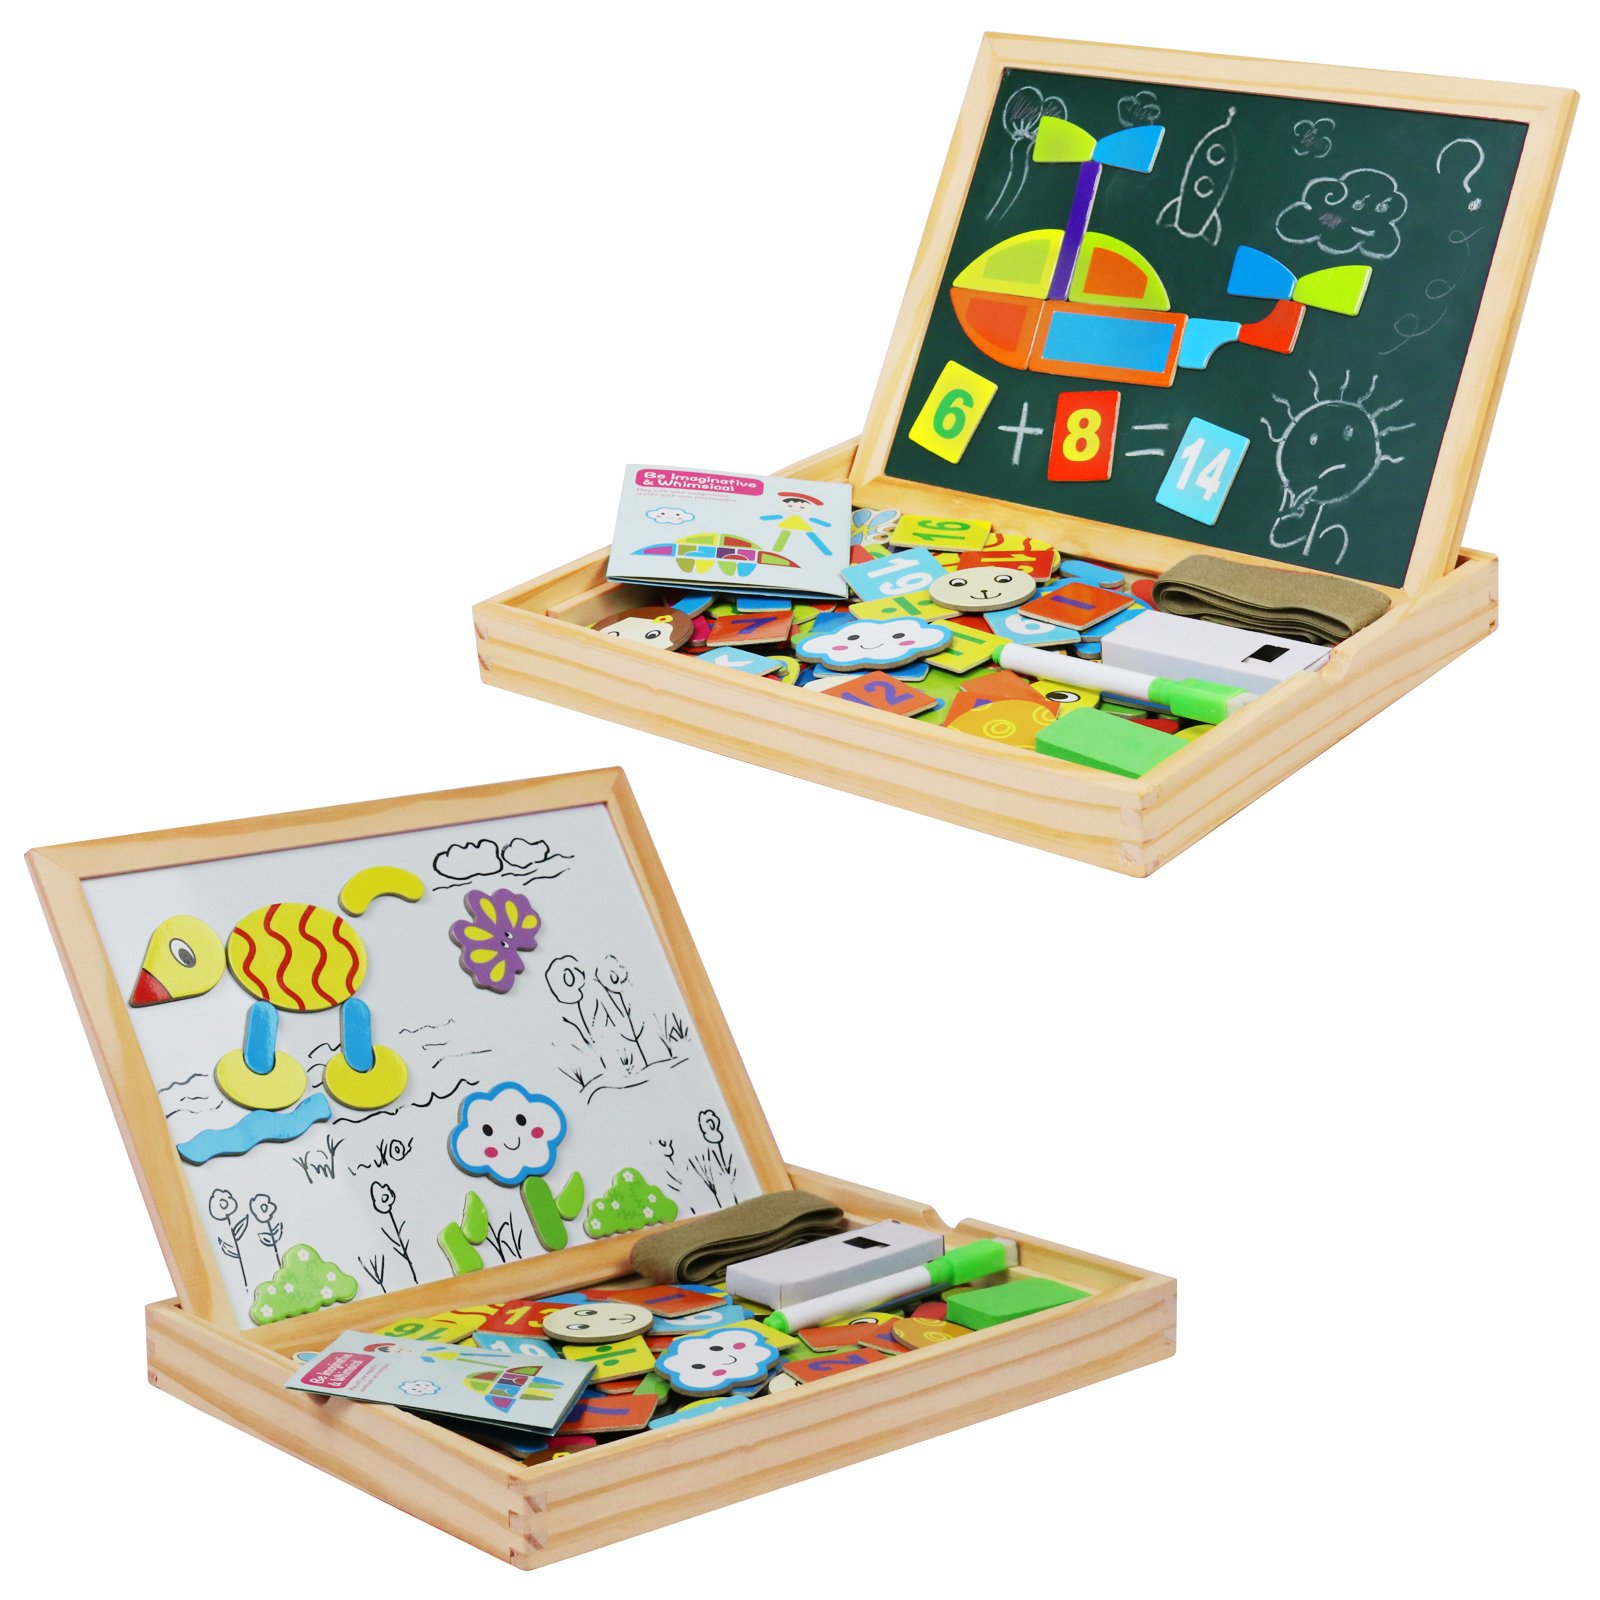 Becko Toddler Magnetic Jigsaw Puzzle Board Wooden Educational Toys for Children, Multifunctional Double Side Travel Wooden Drawing Frame with Dry Erase, Blackboard, Alphabets, Number